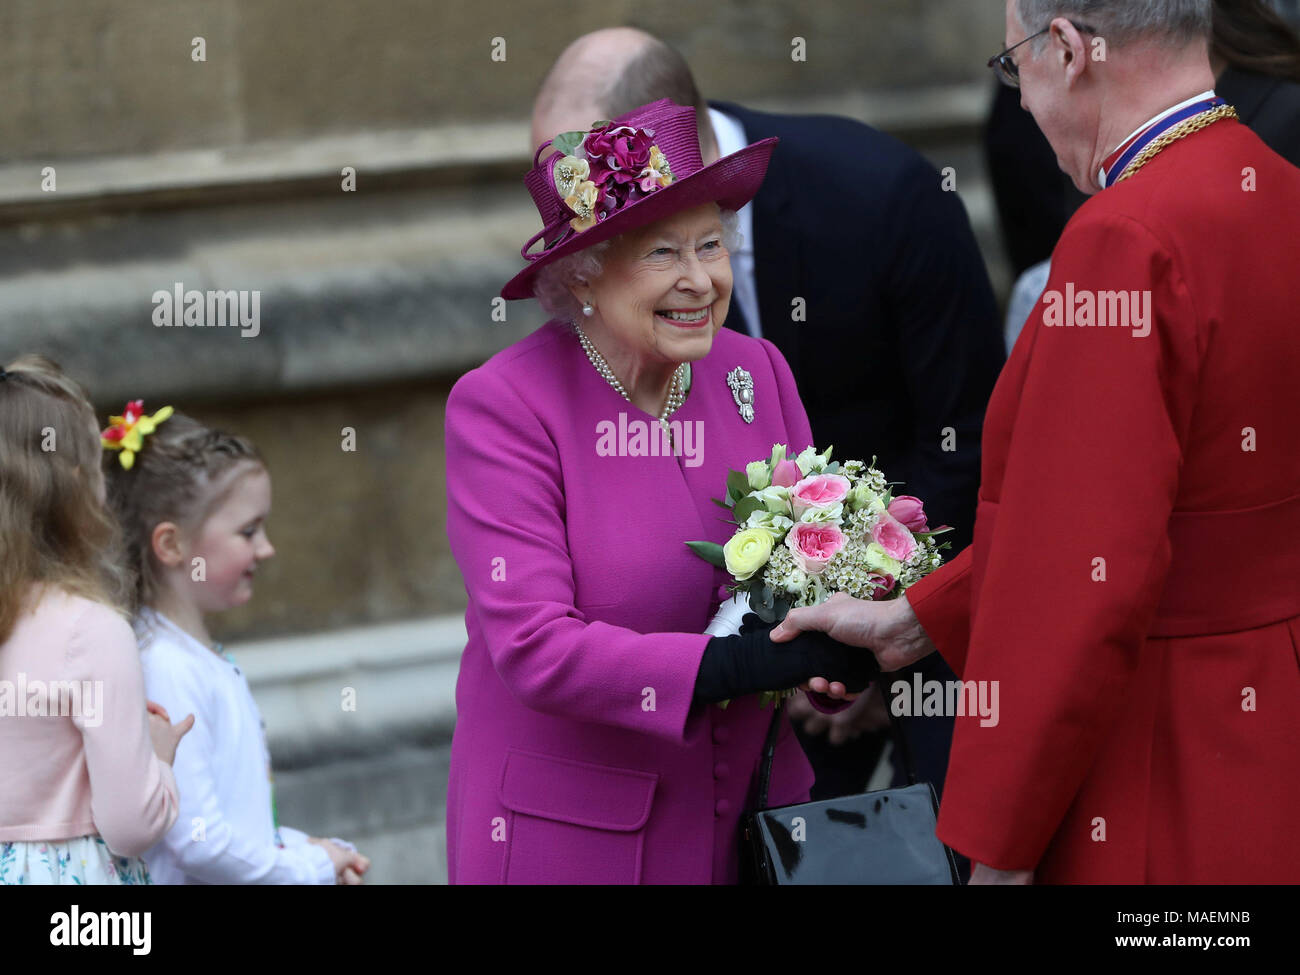 Queen Elizabeth II holds a posey as she leaves following the Easter Mattins Service at St George's Chapel, Windsor Castle, Windsor. - Stock Image